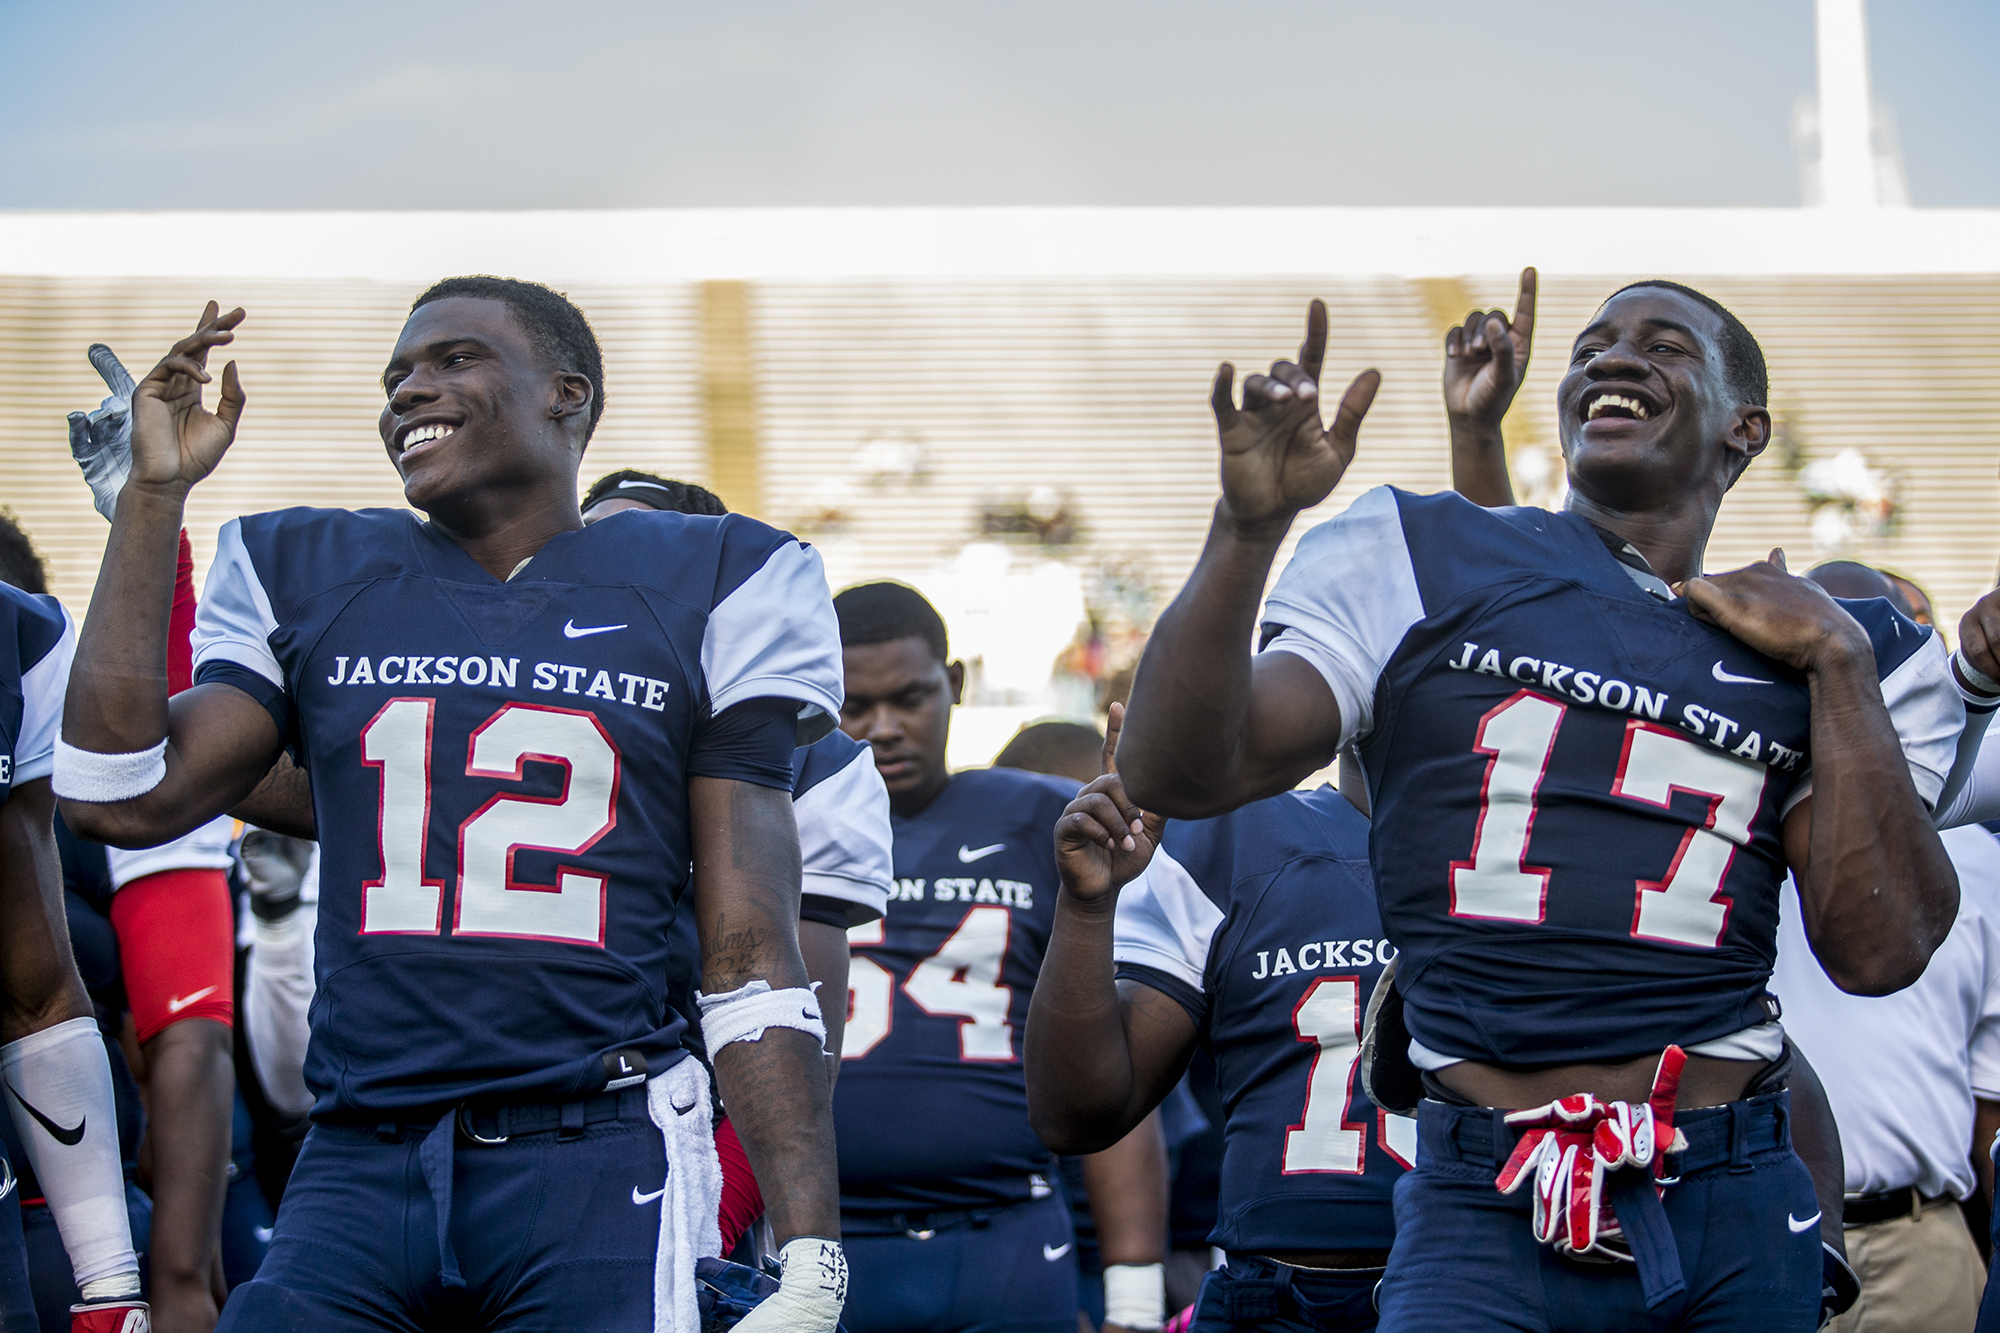 Jackson State University 2018 Homecoming Highlights Mississippi Today